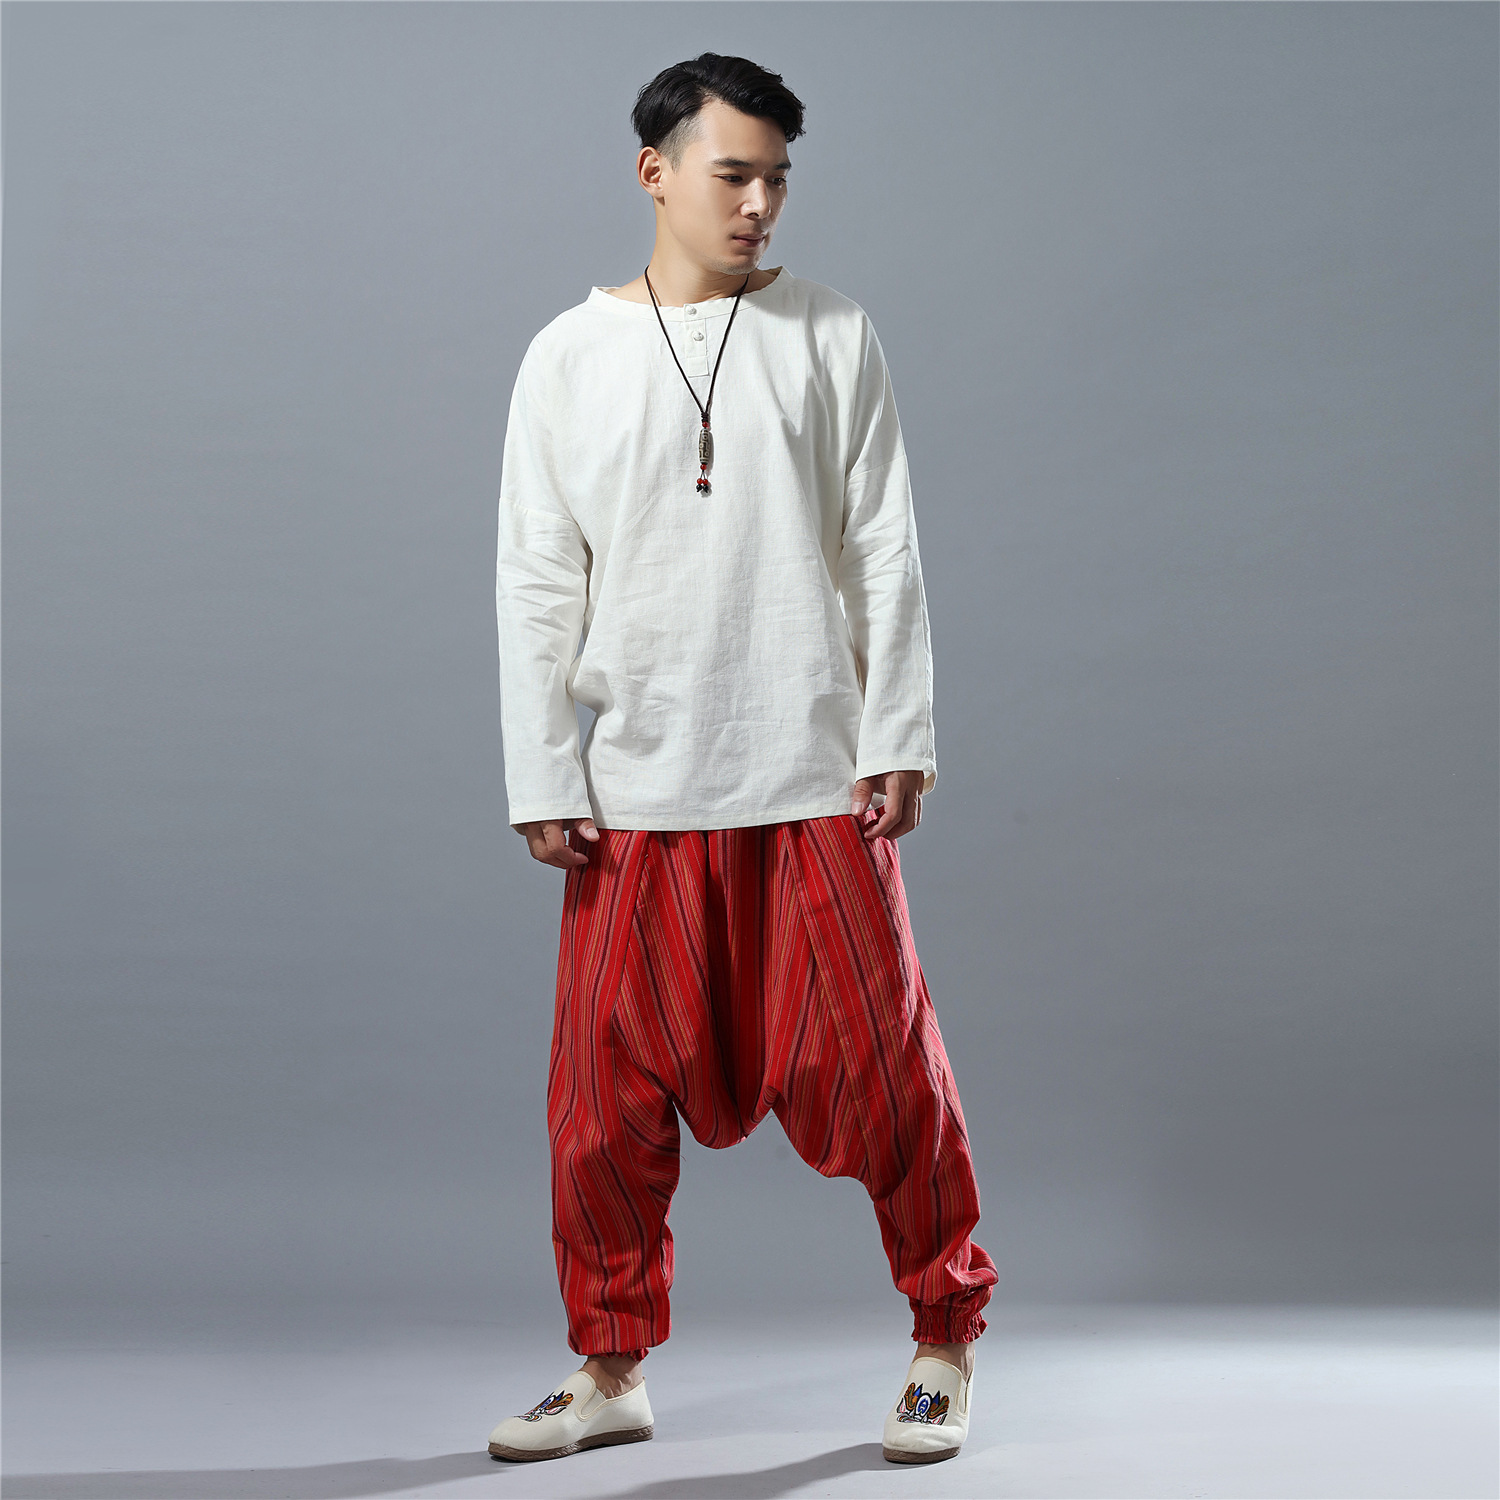 Spring Men Casual Baggy Linen Indian Harem Crotch Capri Pant Bloomers Sweatpants Unisex Jogger Fitness Workout Pant Sportswear in Yoga Pants from Sports Entertainment